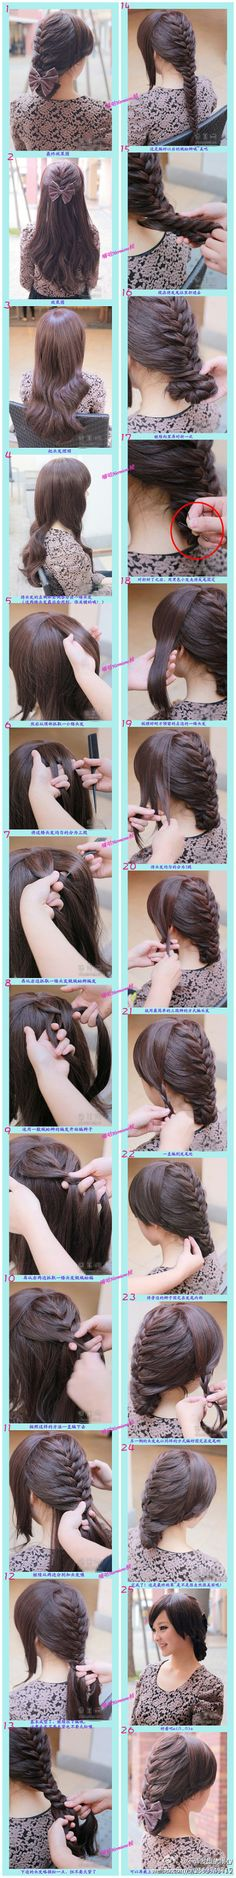 Korean aesthetic DIY braided hair plate made of high-definition picture tutorial; Need to grow my hair out so I can at least do this. Braided Bun Hairstyles, Up Hairstyles, Pretty Hairstyles, Simple Hairstyles, Hair Plates, Diy Braids, Hair Dos, Hair Hacks, Hair And Nails